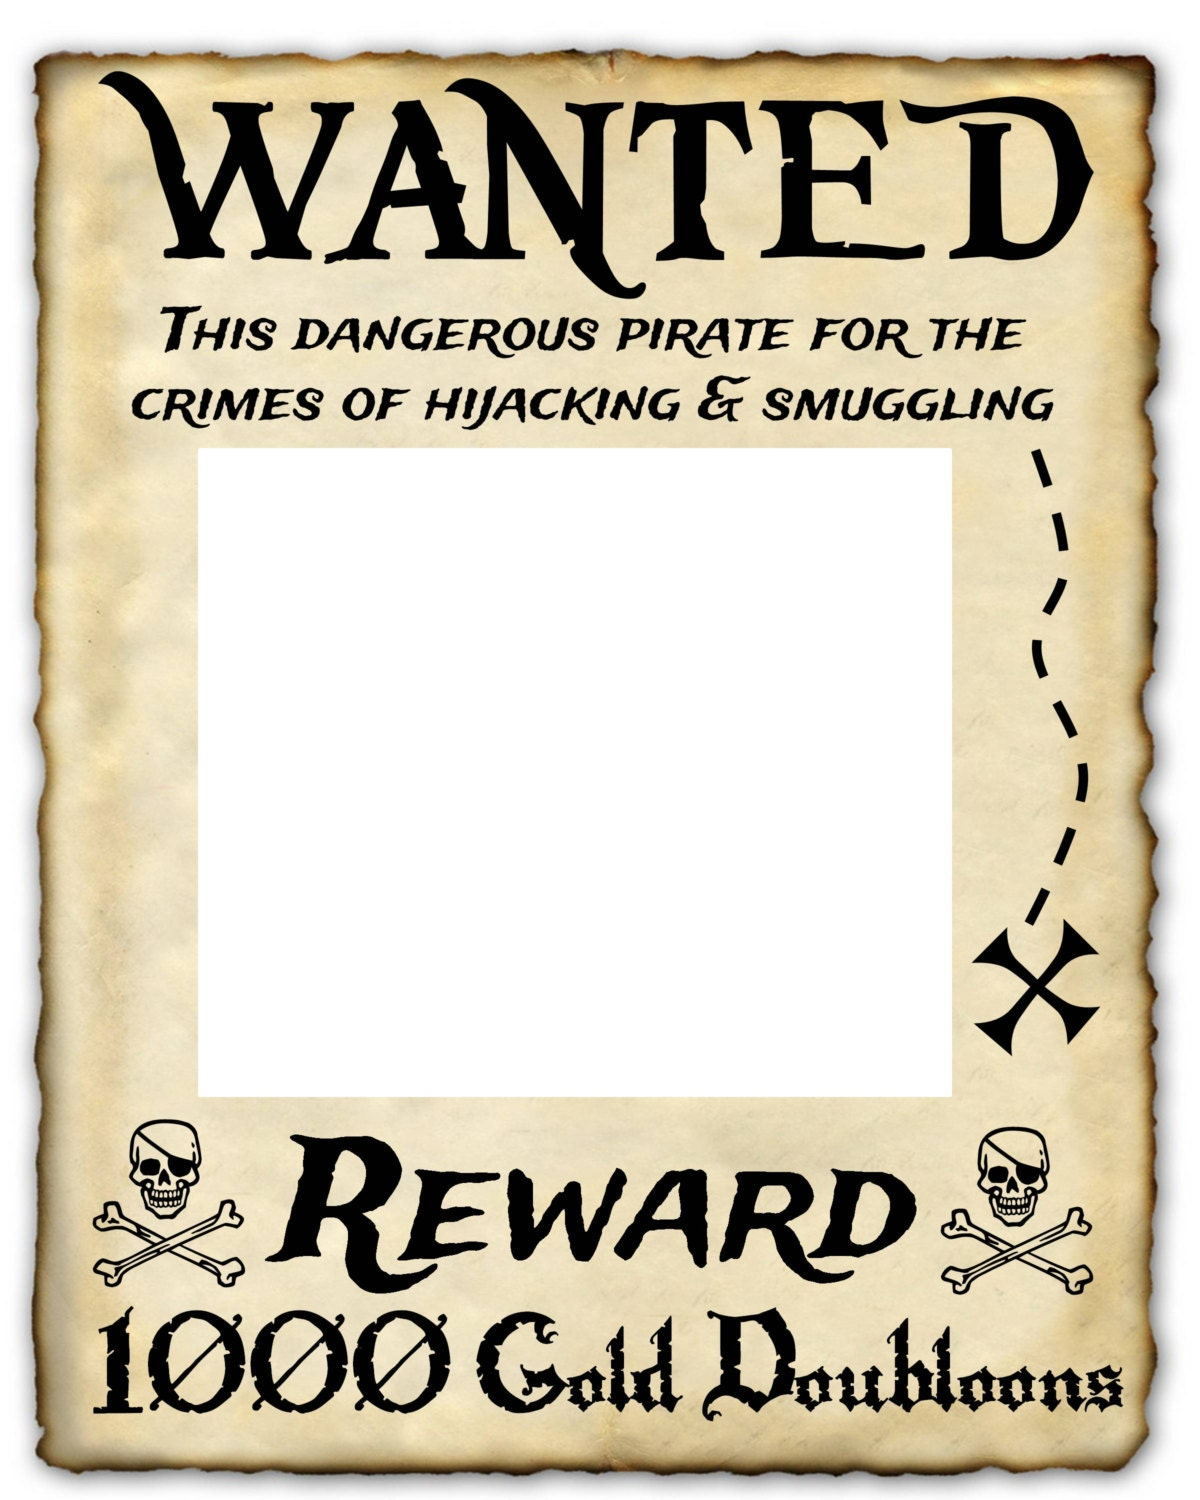 Pirate wanted poster template - cafenews.info